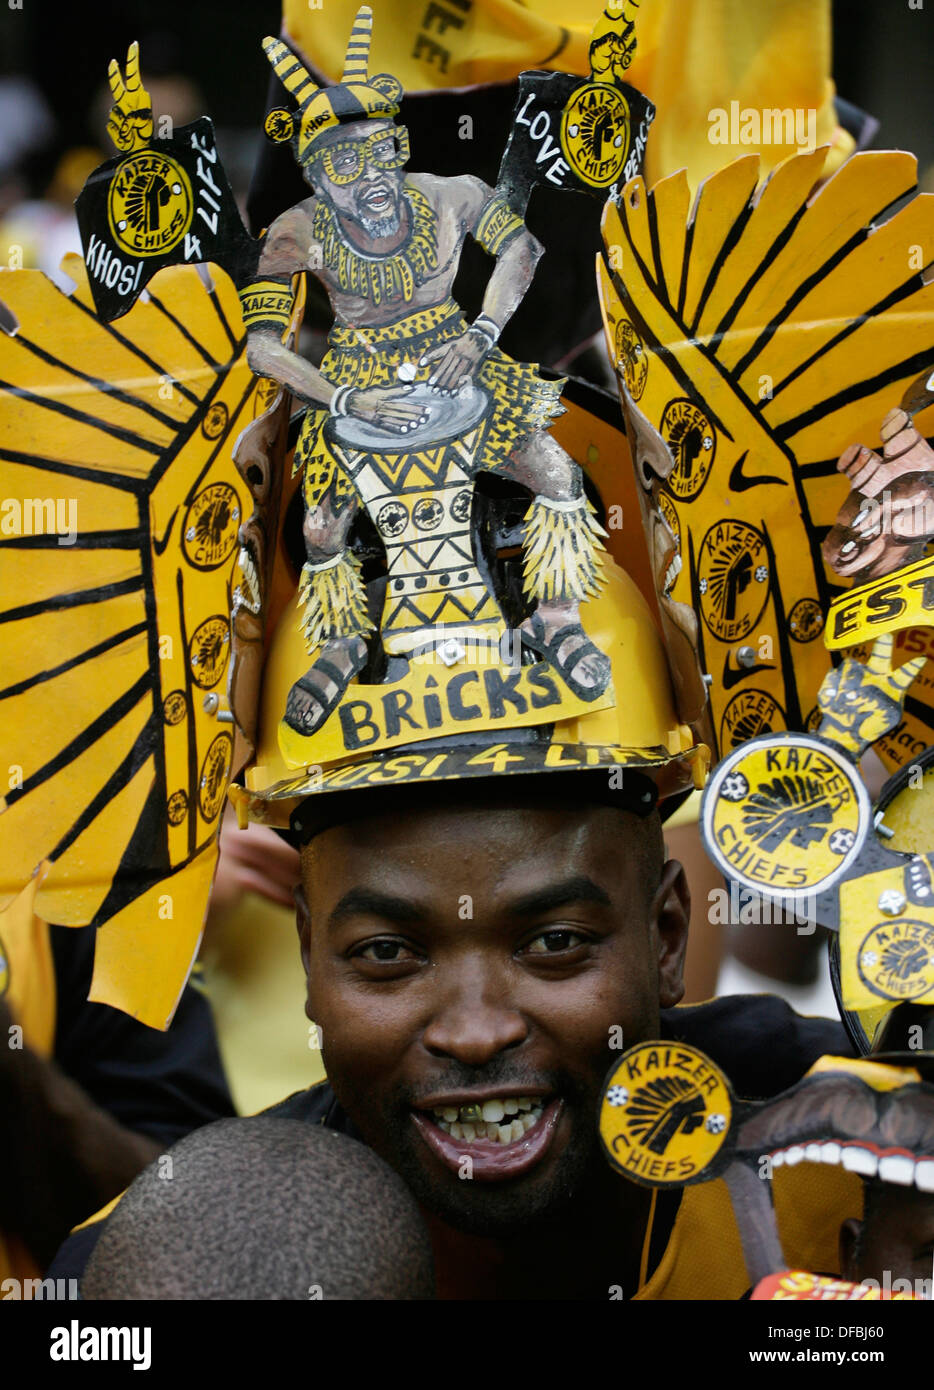 Kaizer Chiefs fans Moses Mabhida Stadium in Durban during their match with Mamelodi Sundowns December 19 2009 Durban is one - Stock Image